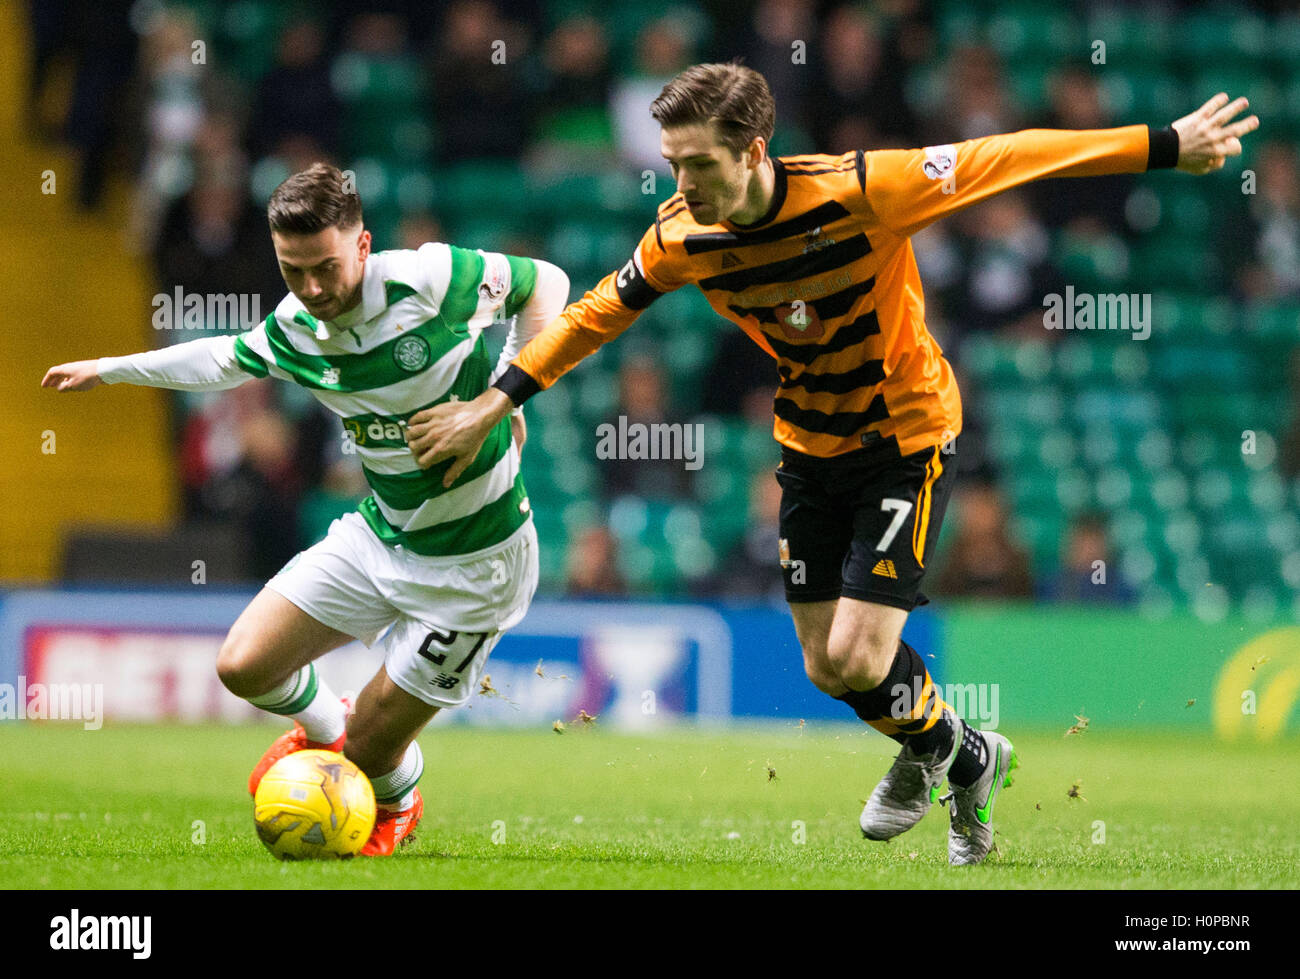 Alloa Athletic's Iain Flannigan (right) and Celtic's Patrick Roberts battle for the ball during the Betfred - Stock Image